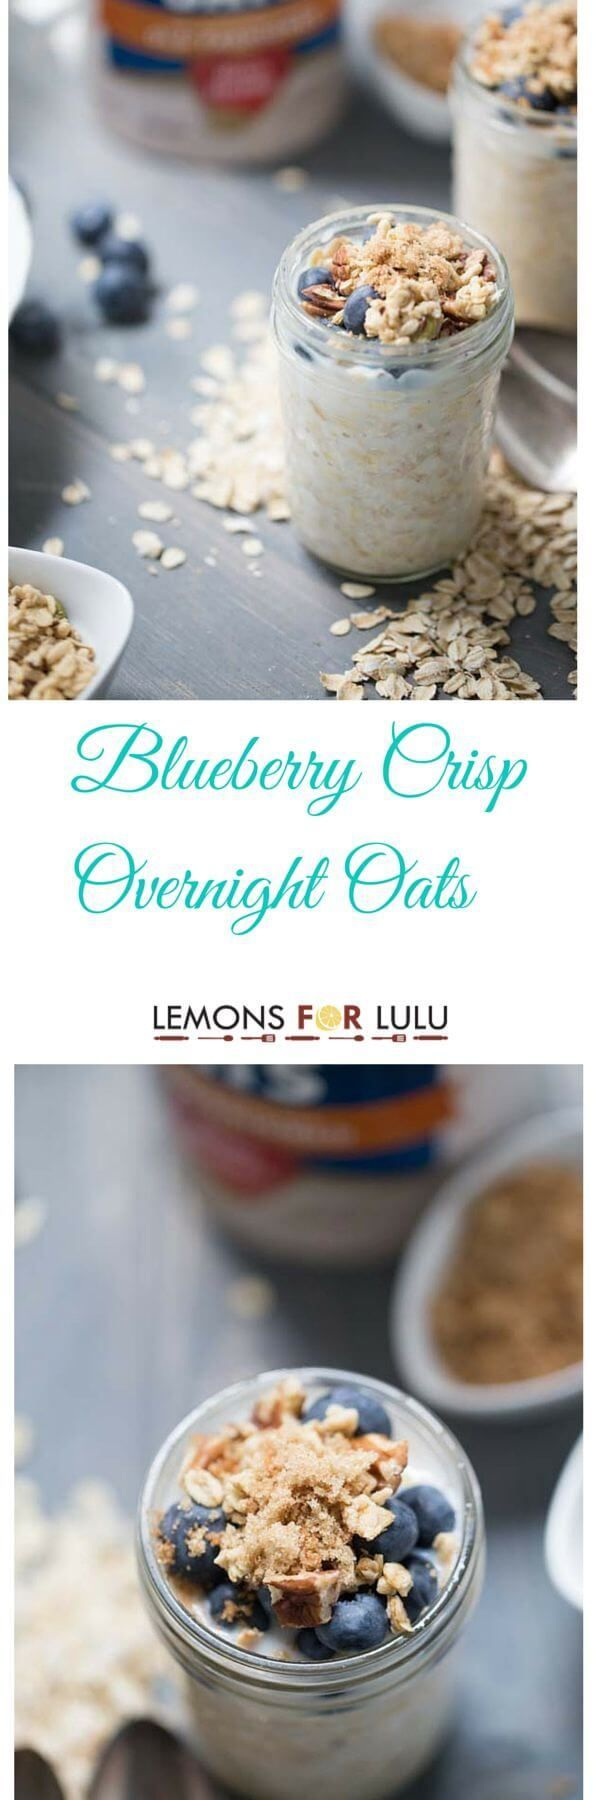 Supercharge your mornings with this easy overnight oats recipe! Fresh, plump blueberries, nuts and spices make this blueberry crisp flavored oatmeal a delicious breakfast everyone will love! lemonsforlulu.com #healthy #breakfast